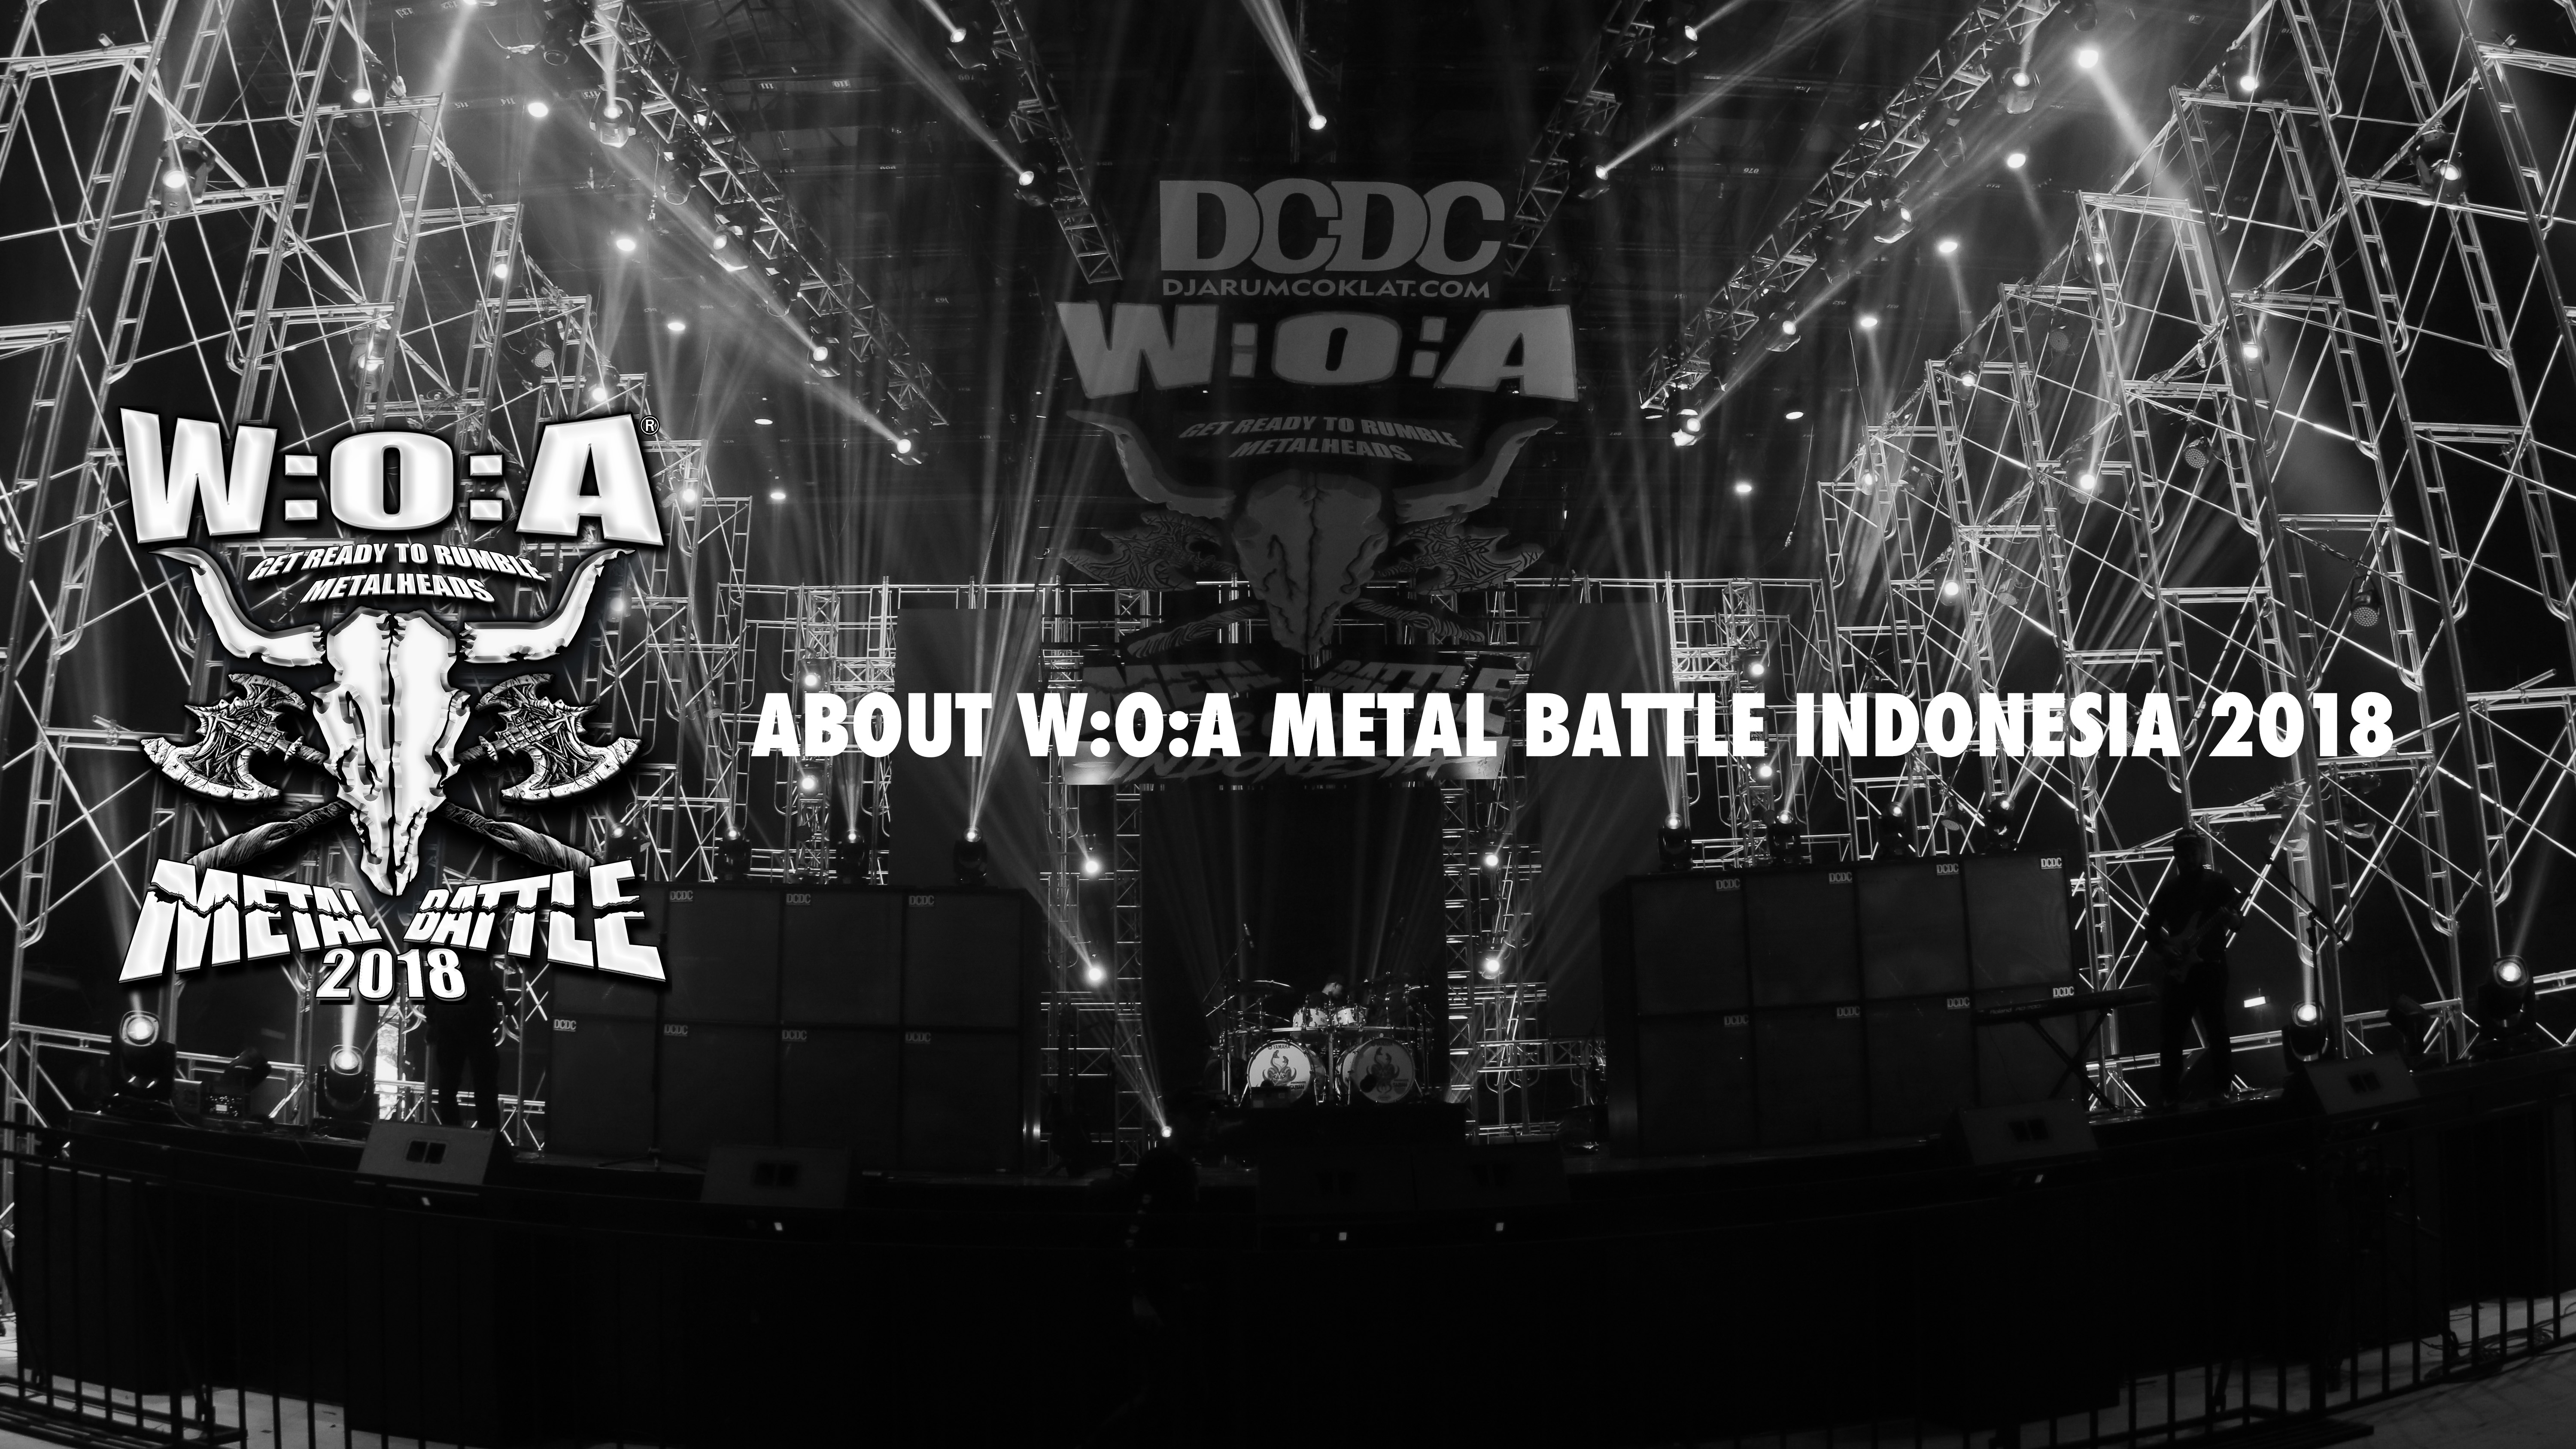 ABOUT W:O:A METAL BATTLE INDONESIA 2018